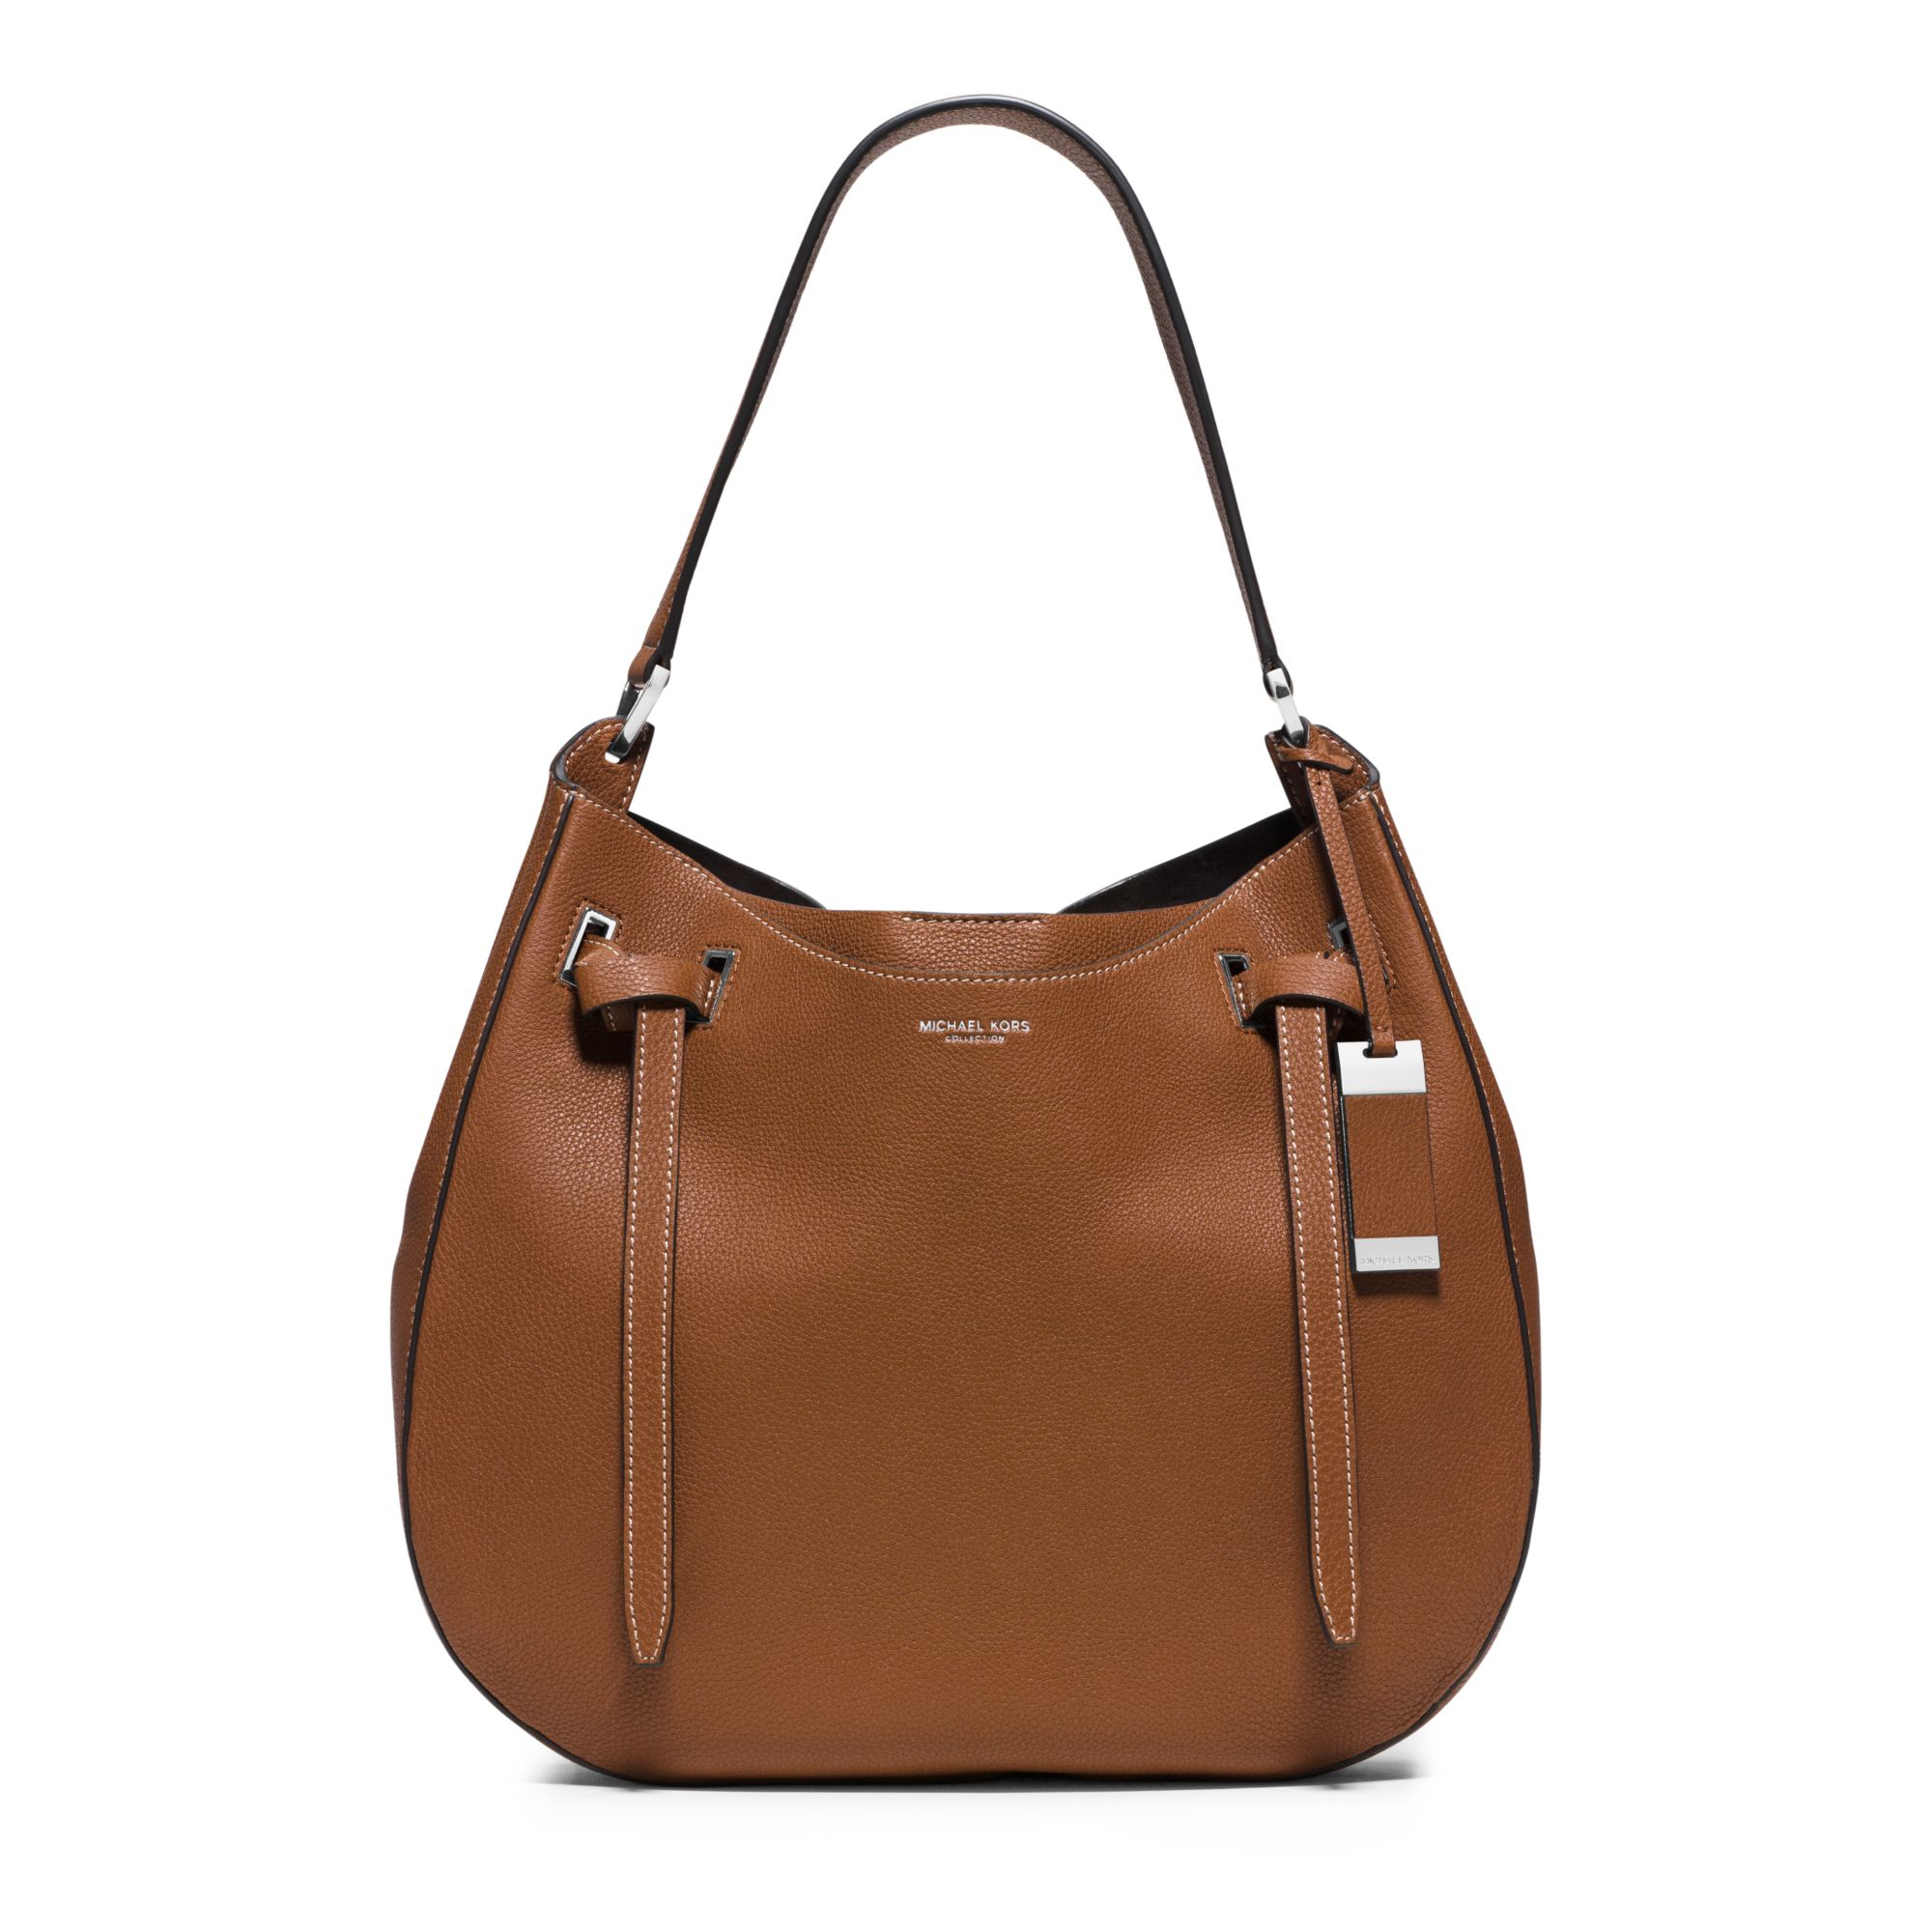 Michael kors Rogers Large Leather Shoulder Bag in Brown | Lyst